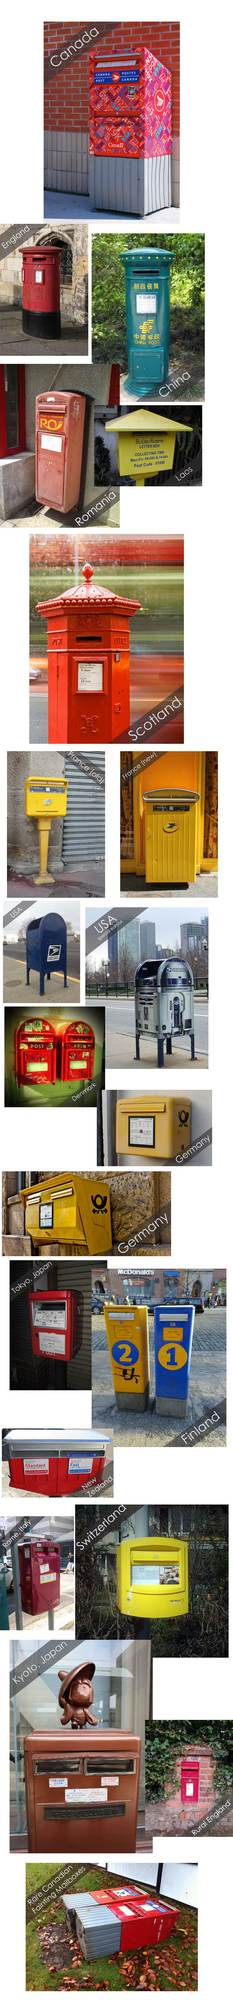 22 mailboxes from around the world, showcasing  their different shapes and colours.